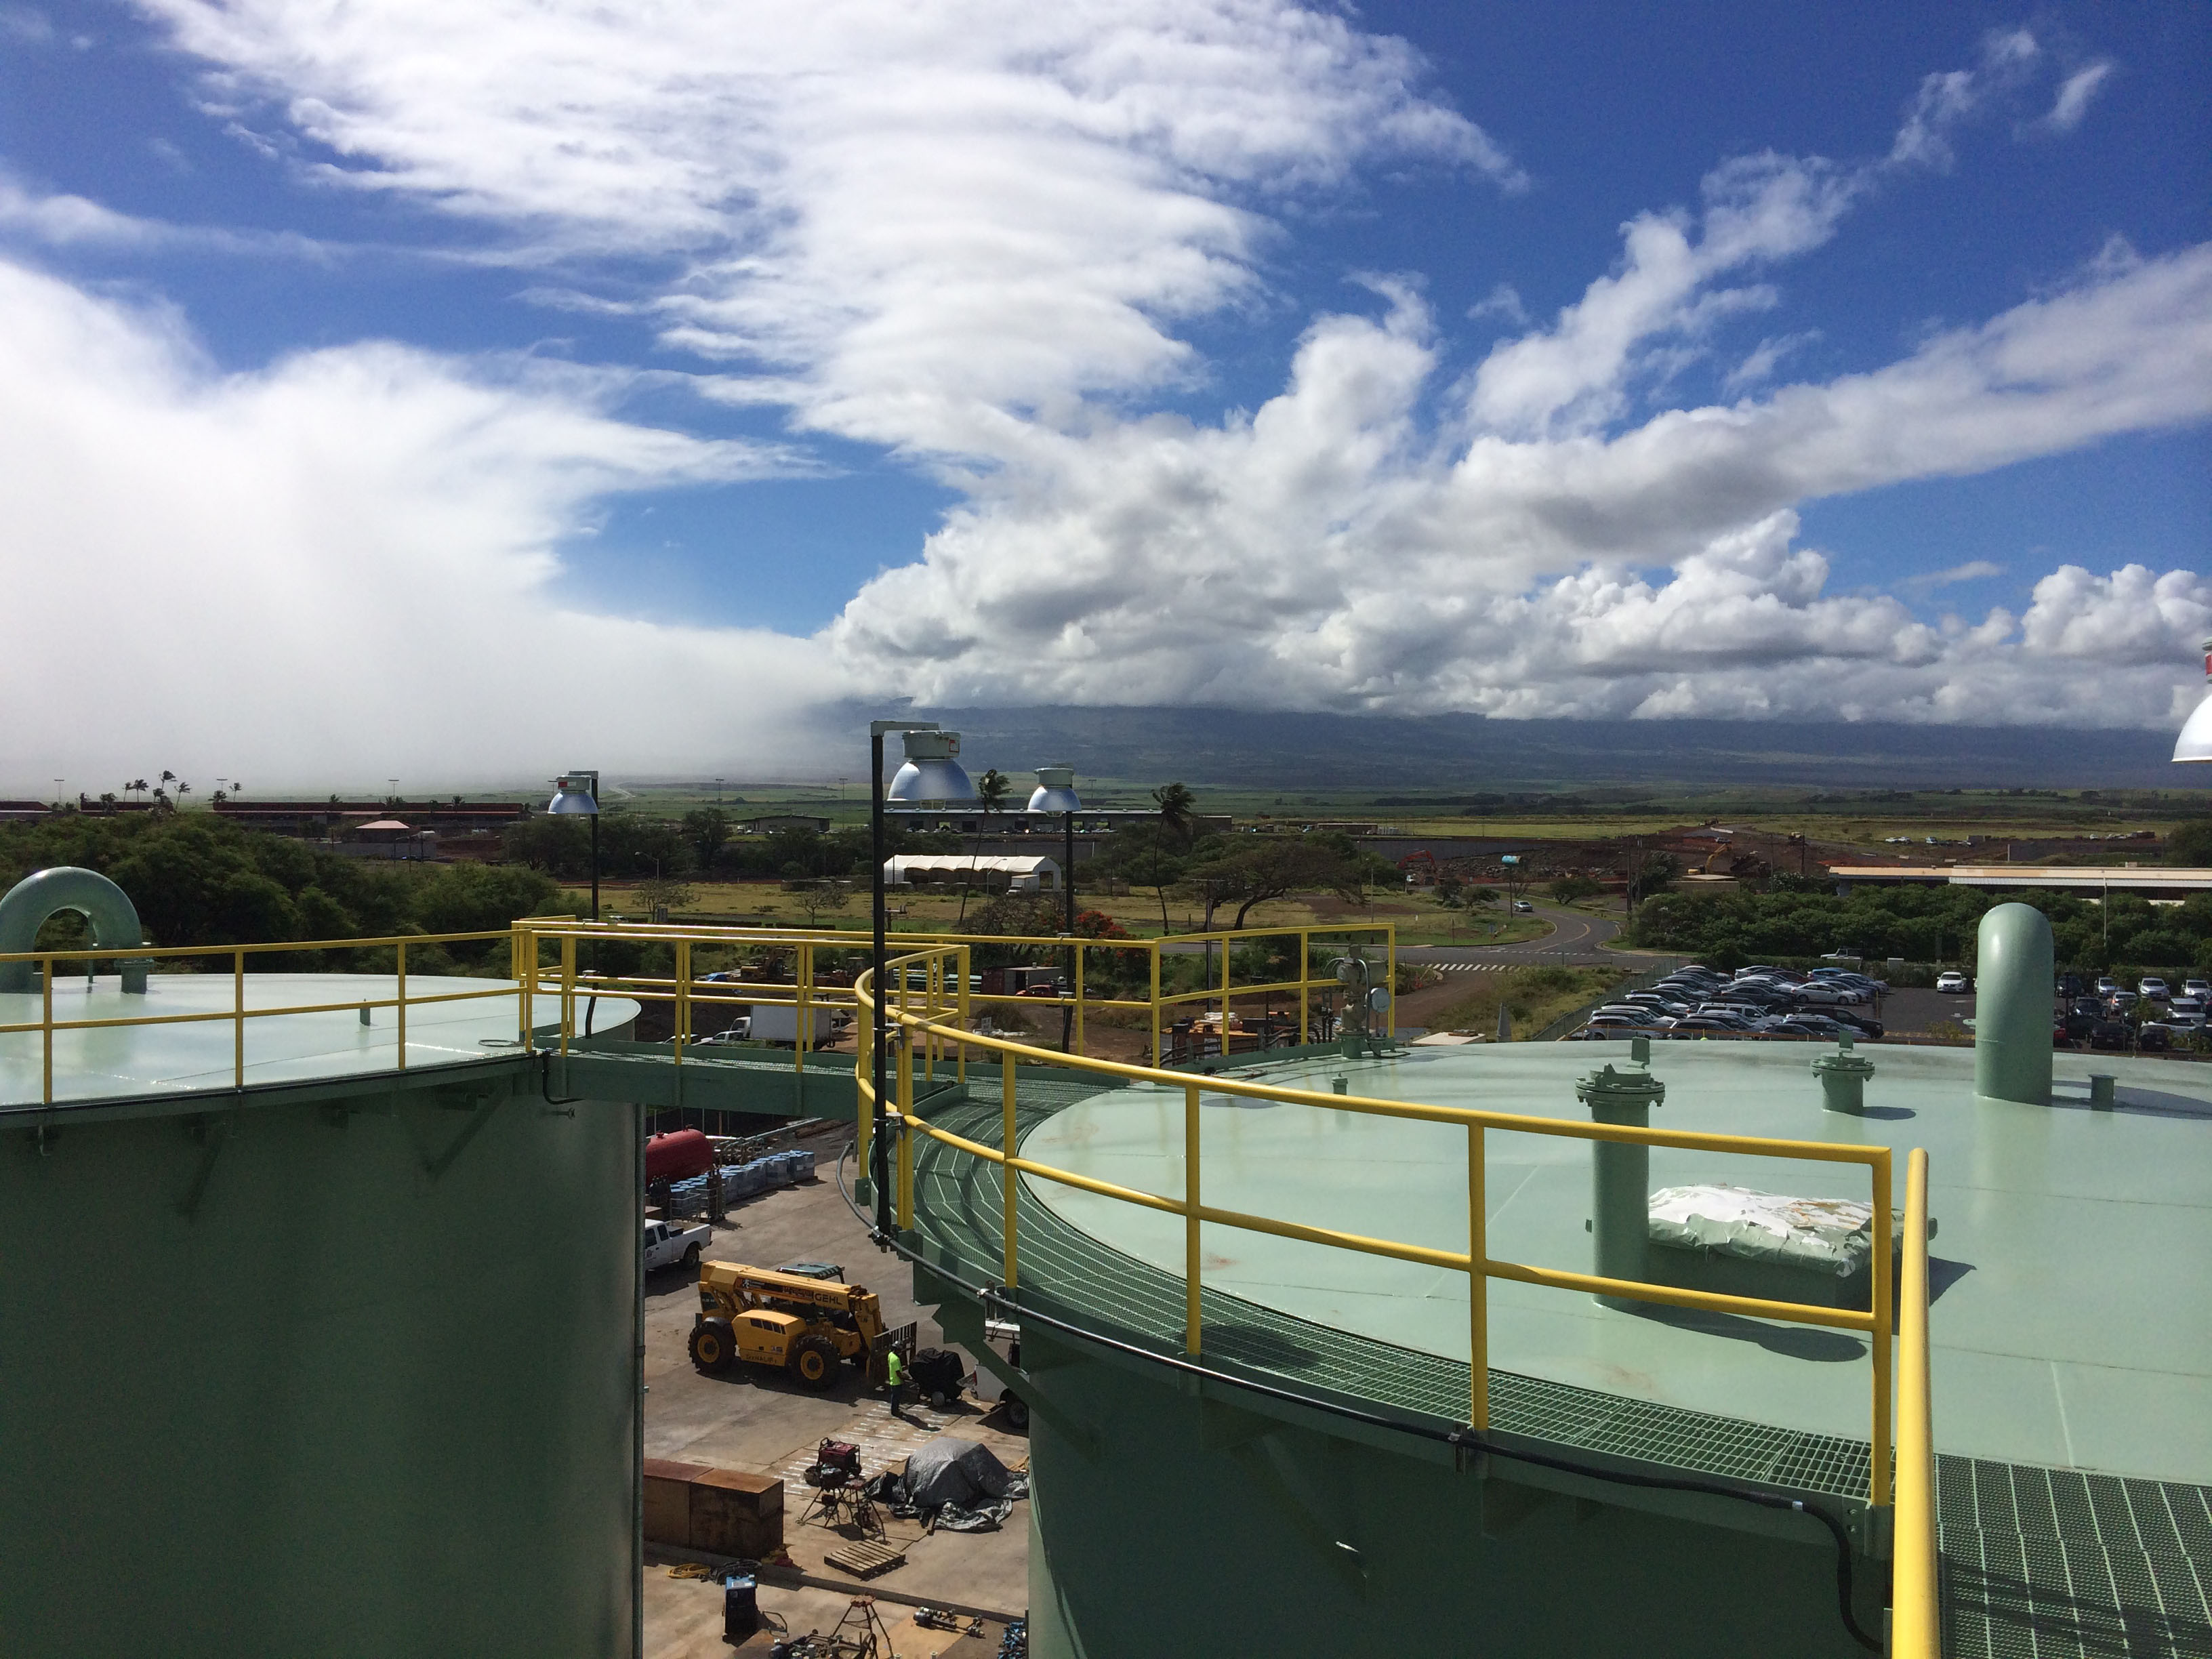 Hffc Jet A Storage Facility Maui International Airport Ogg Velcon Filters Fuel Aviation Bulk Tanks